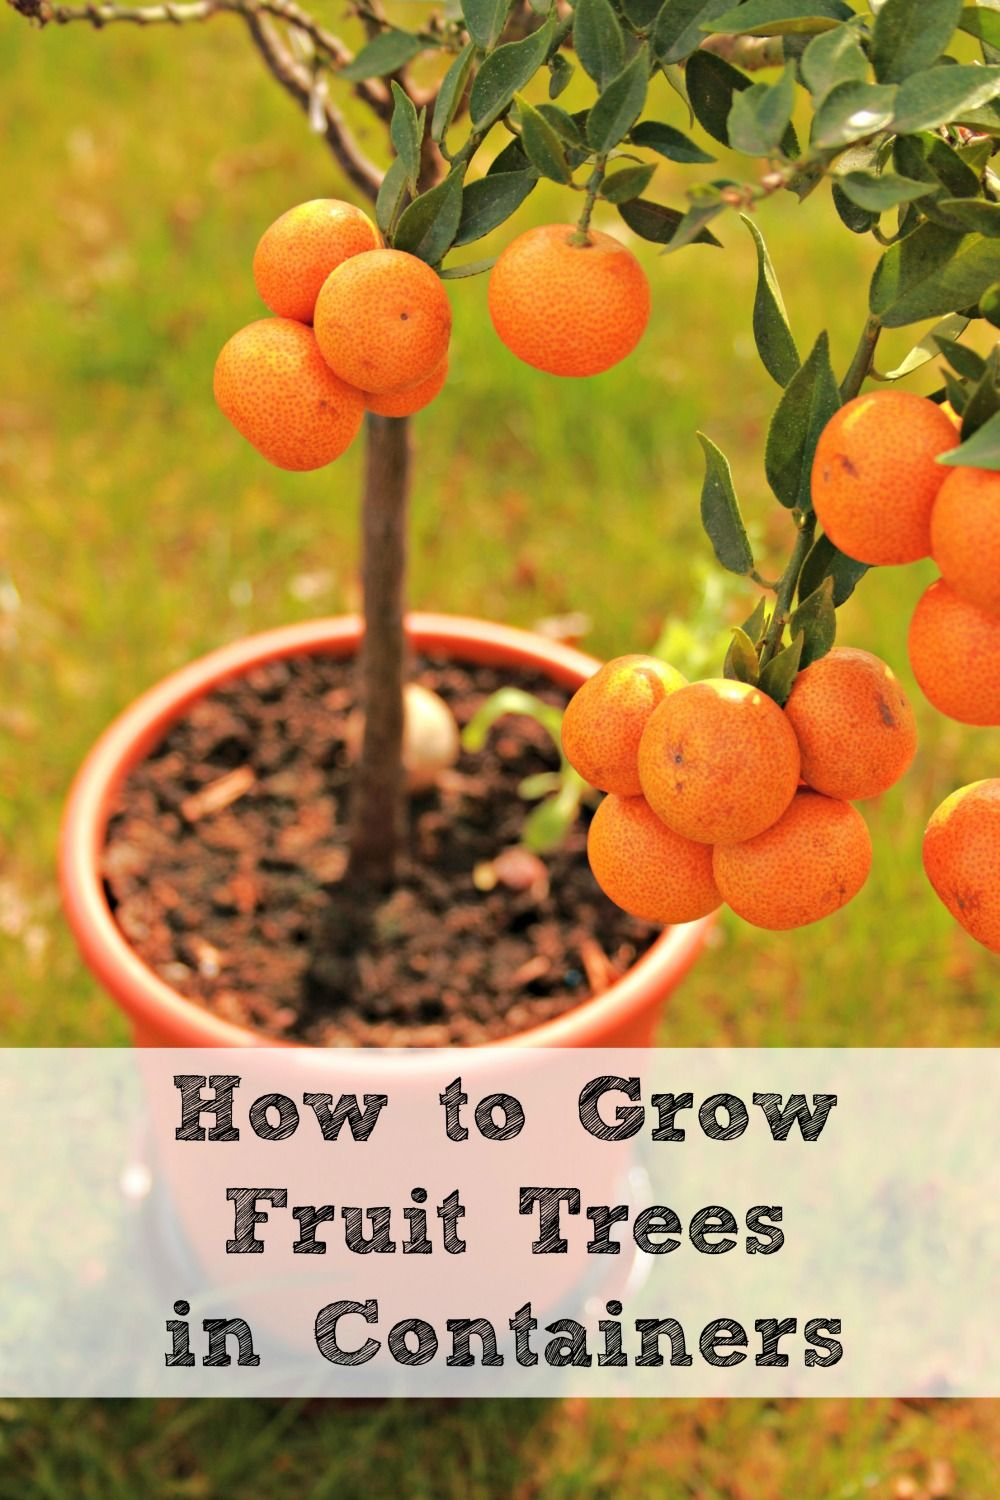 Companion Planting What Not To Plant Together Moms Need To Know Growing Fruit Fruit Trees In Containers Growing Fruit Trees